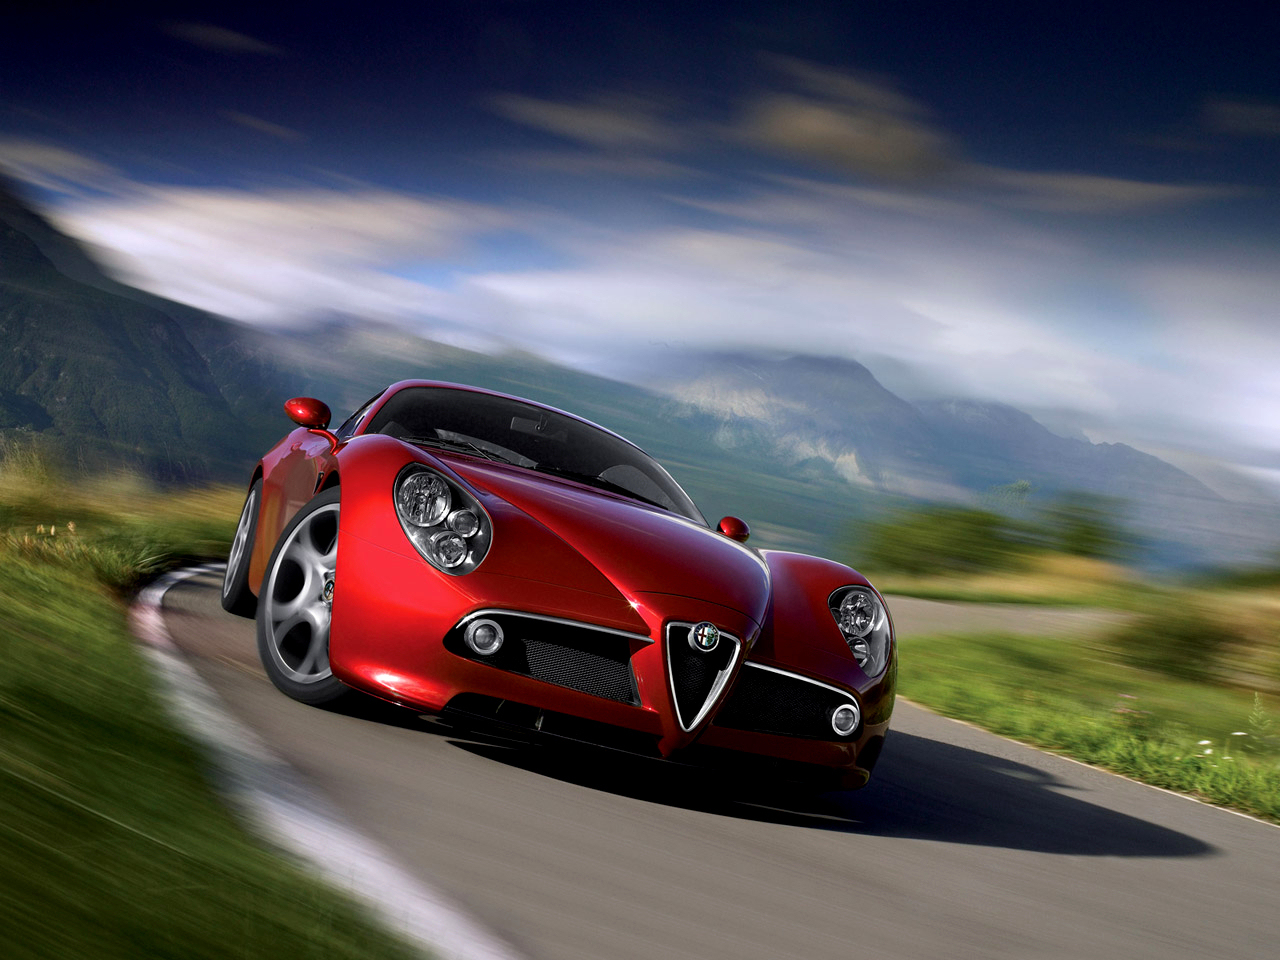 wallpaper 1024x960: Alfa Romeo 8C